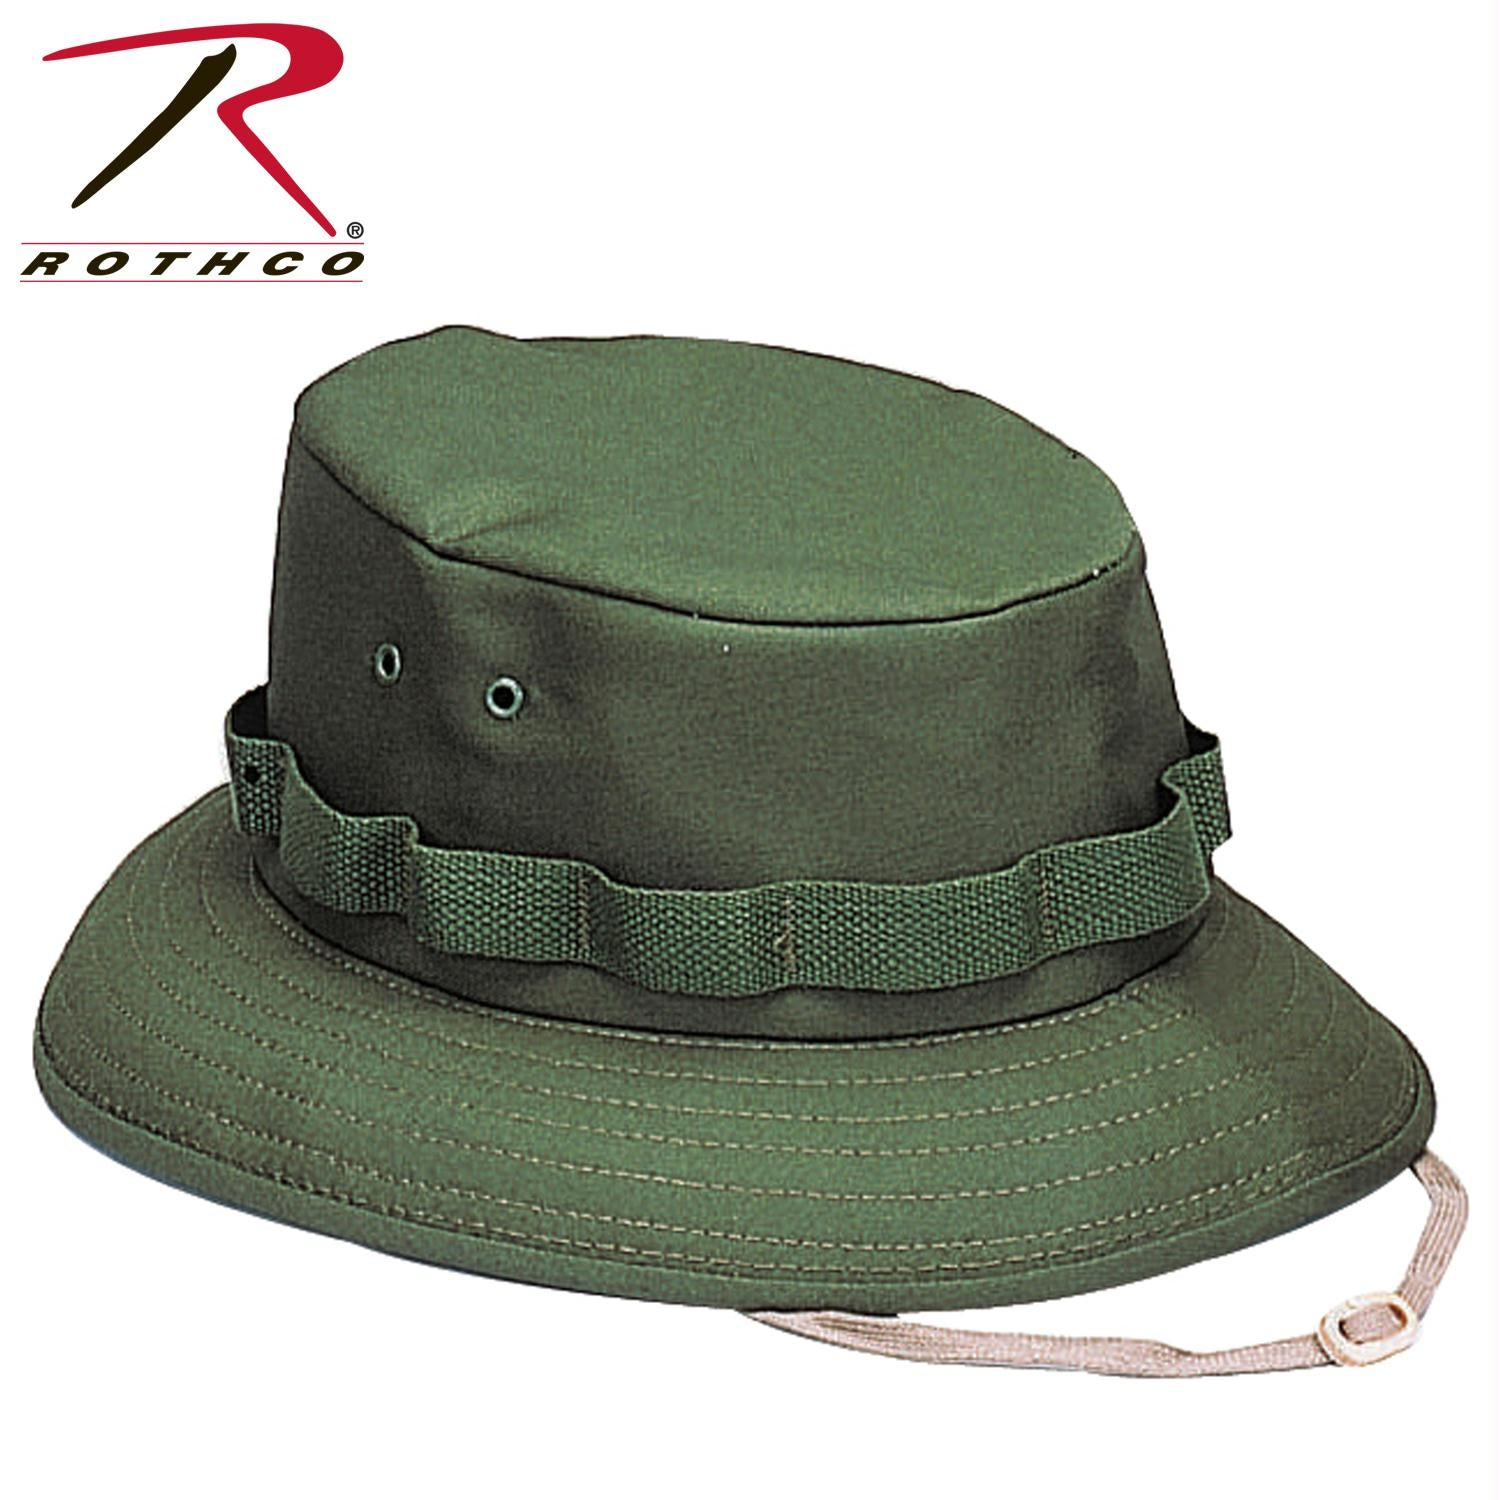 Rothco Jungle Hat - Olive Drab / M